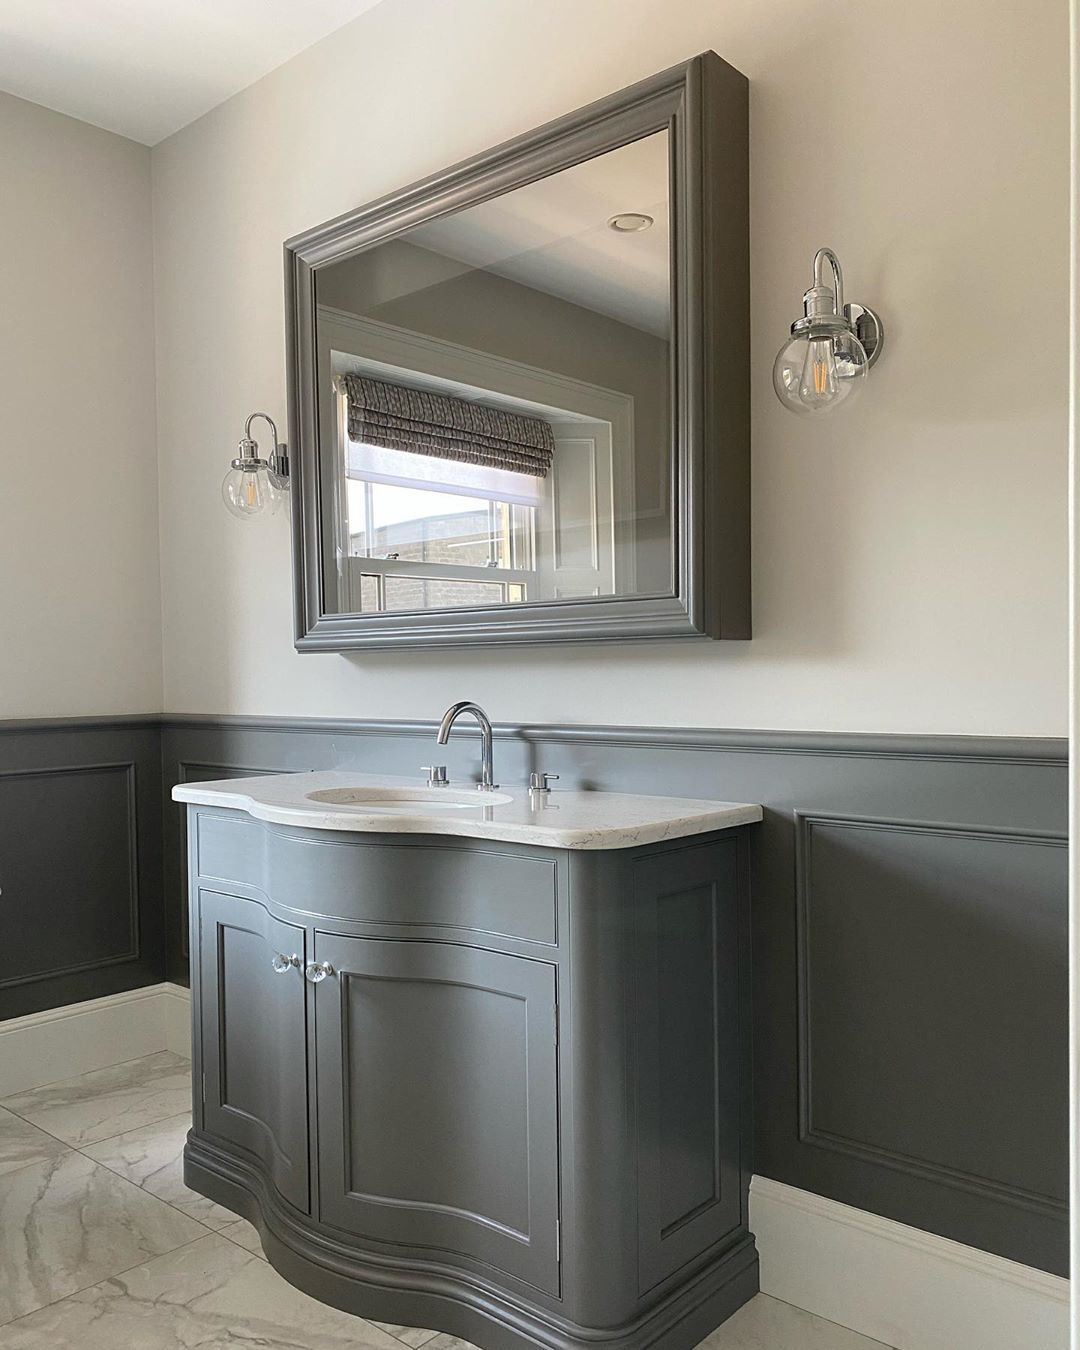 M K Units Edenhouse Design On Instagram June Happy Sunny Monday Another Piece Completed At The Start Of The Year Mai In 2020 Vanity Units Eden House Design